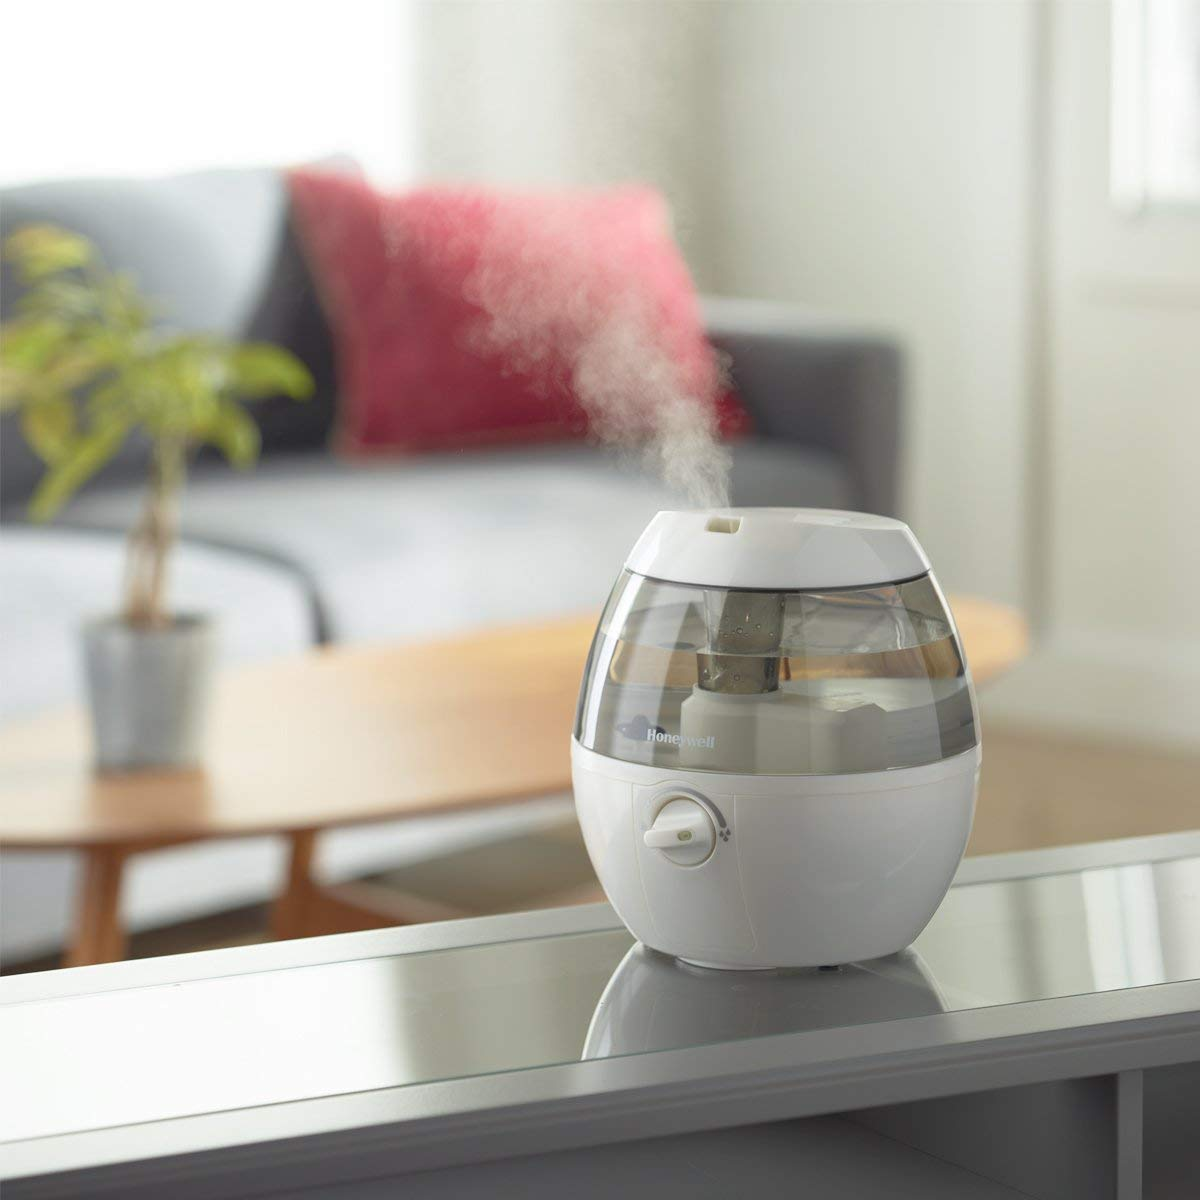 white humidifier sitting on counter.